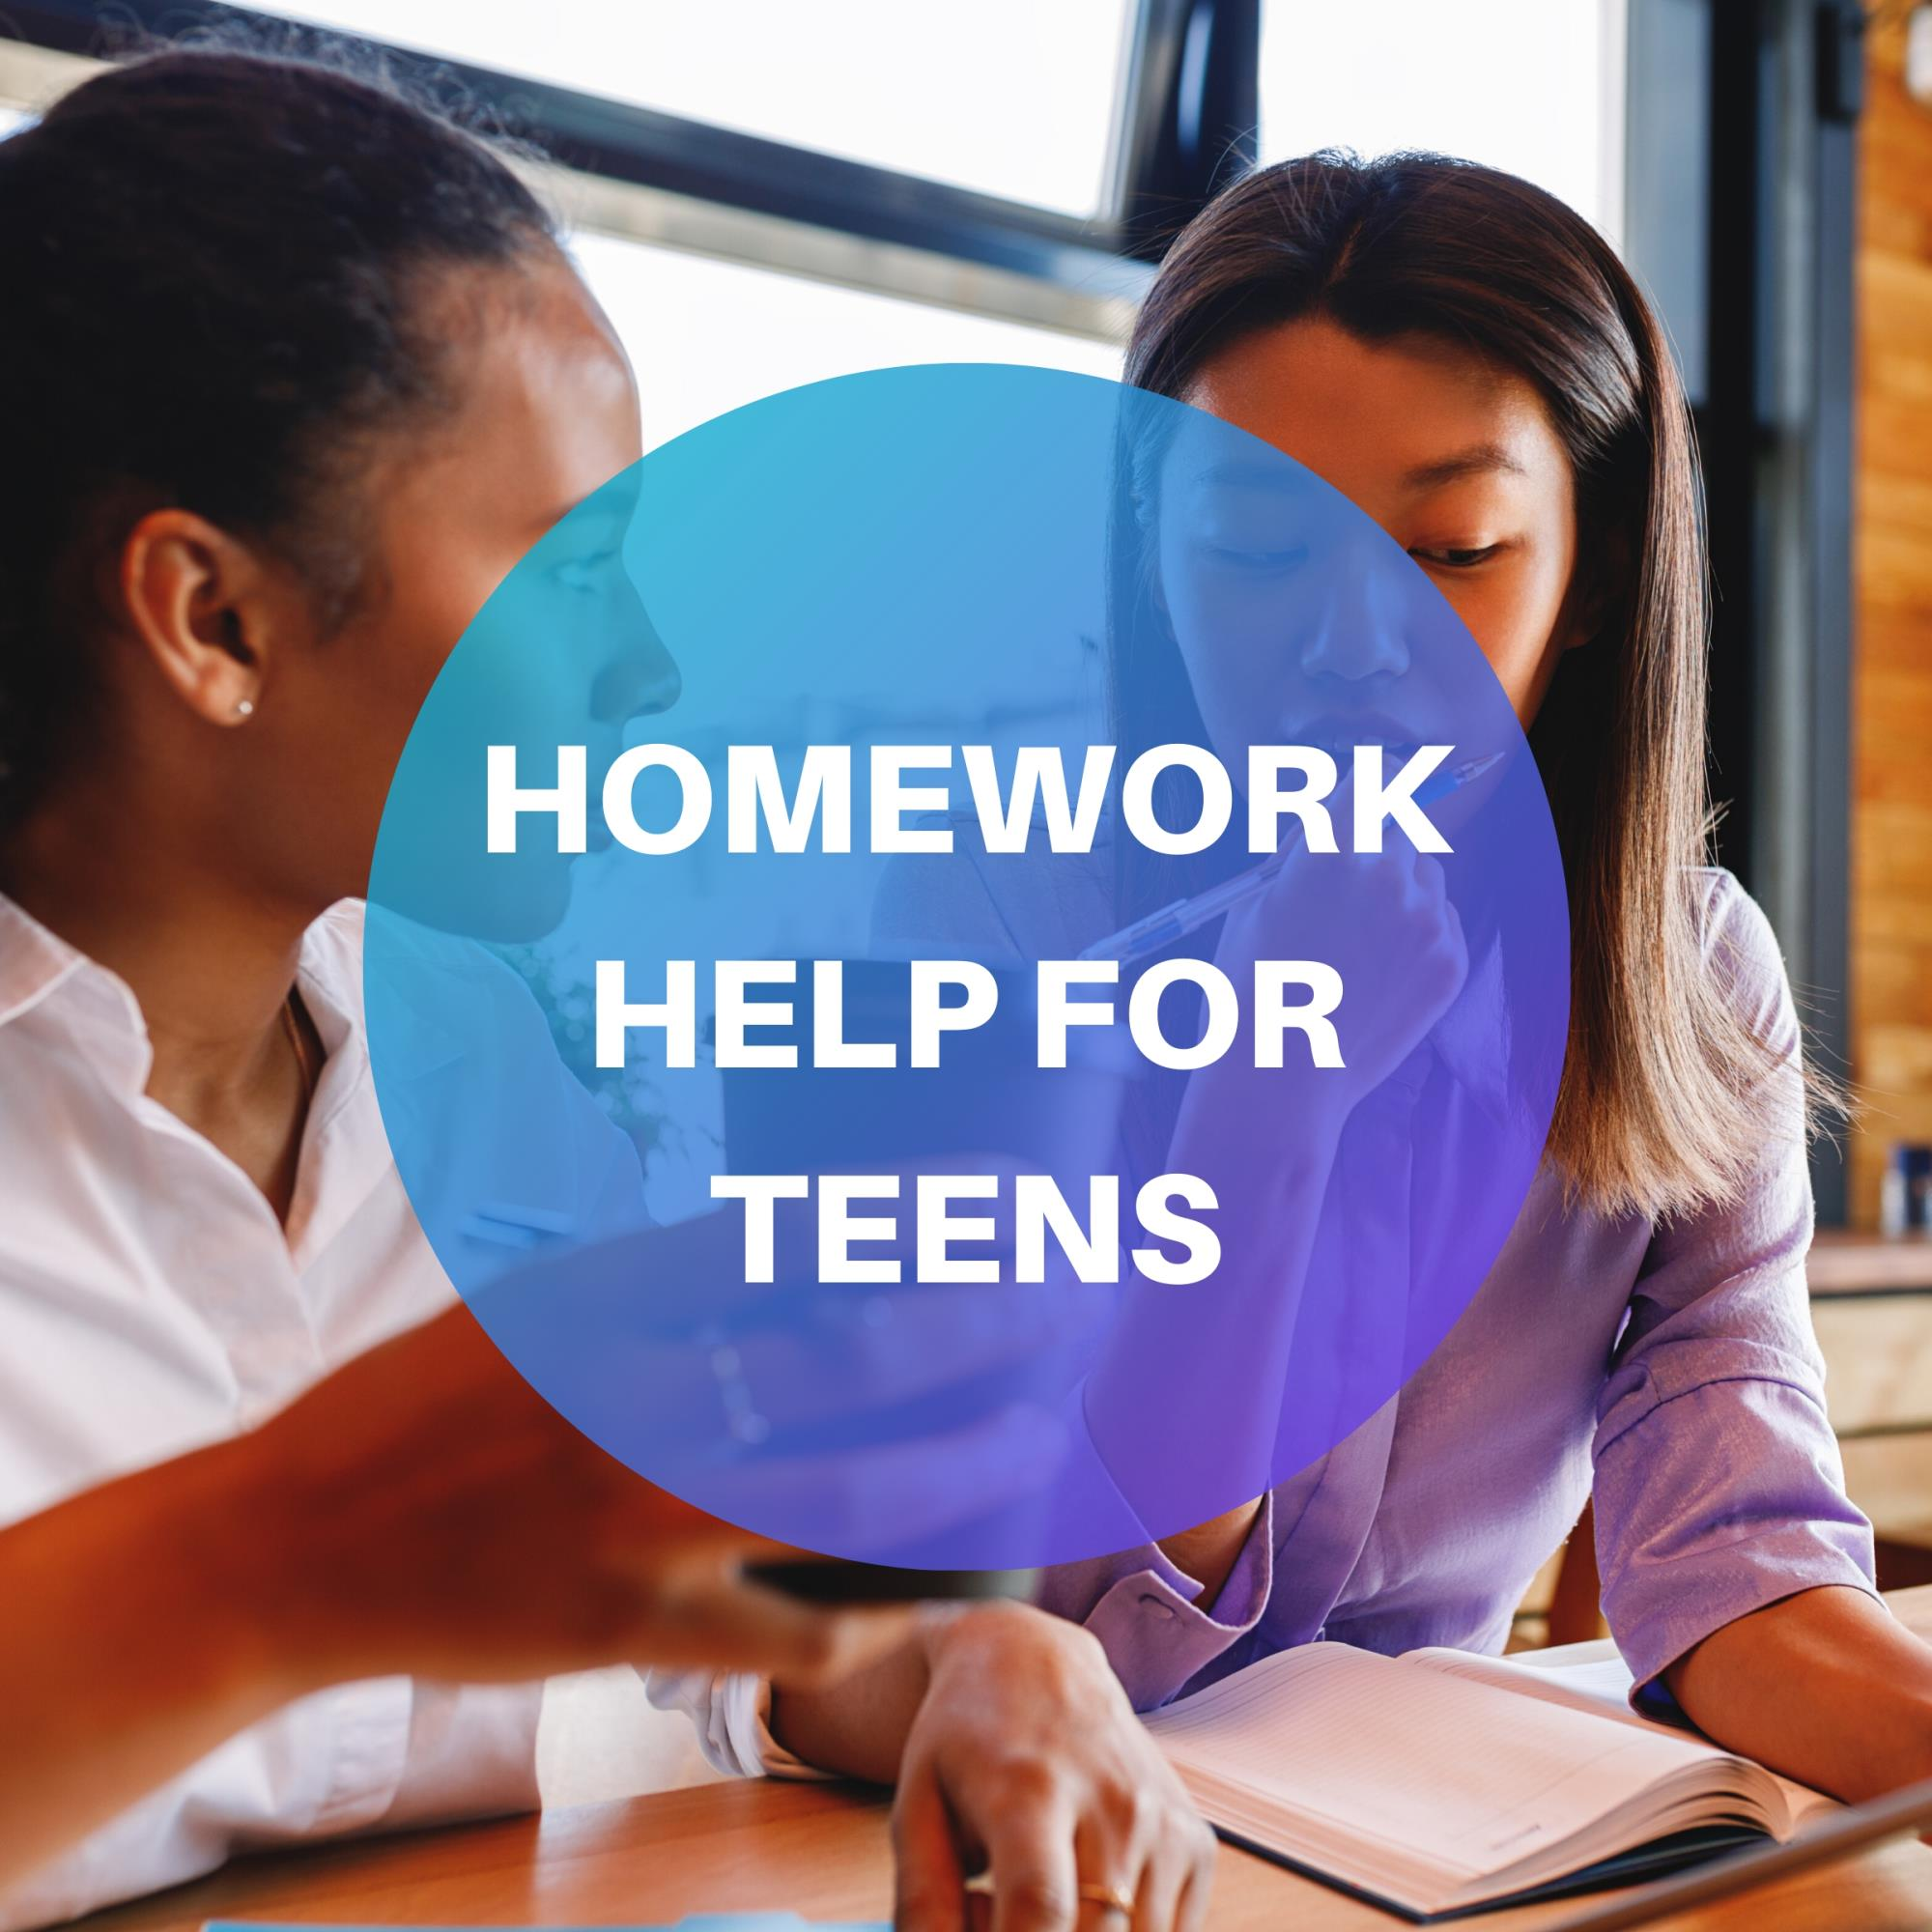 Resources for Teens